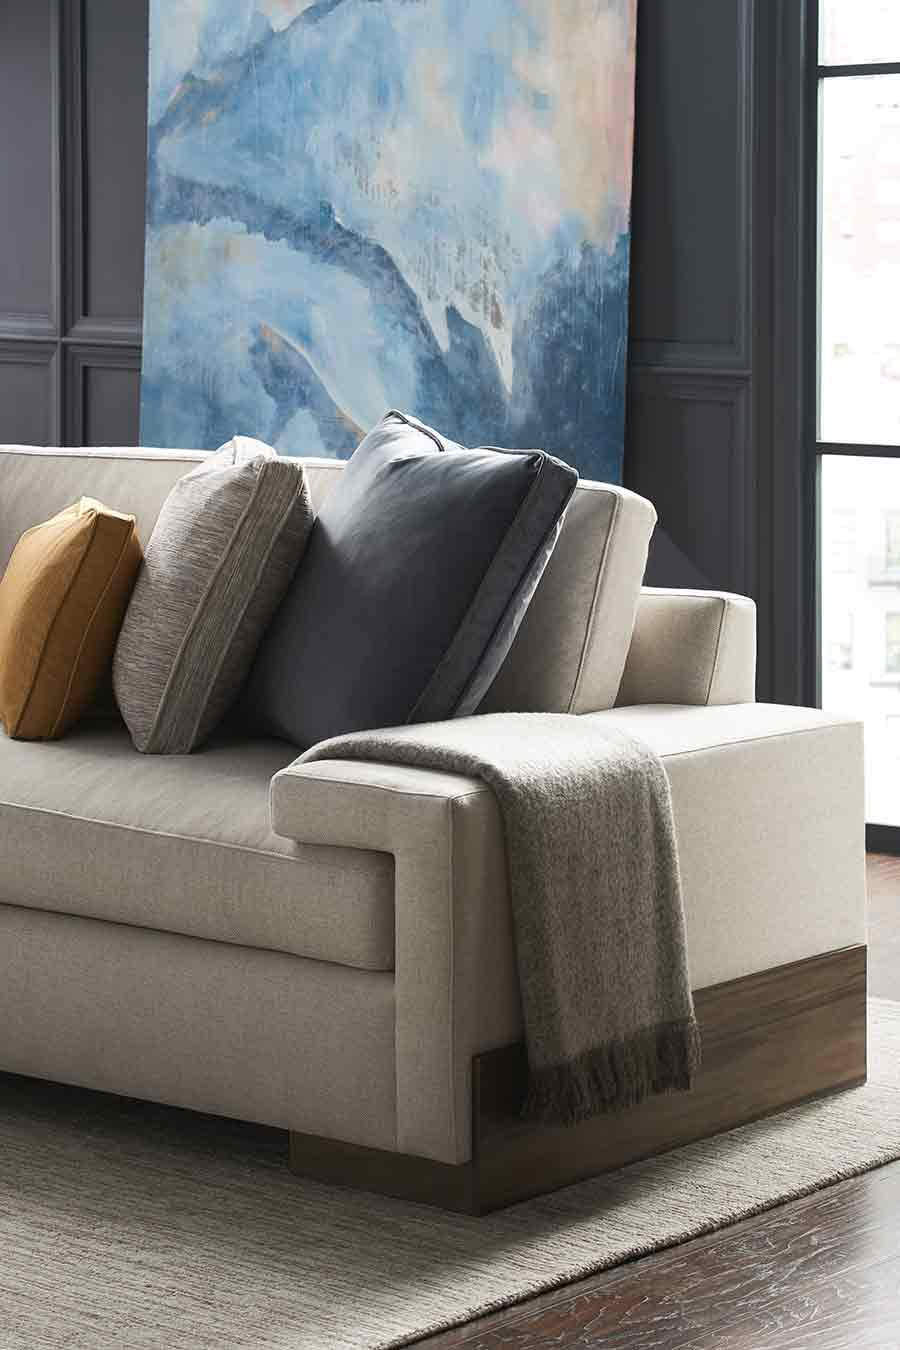 Contemporary Living Sectional Sofa   Modern Luxury Exclusive Designer Handcrafted Furniture   Sandton